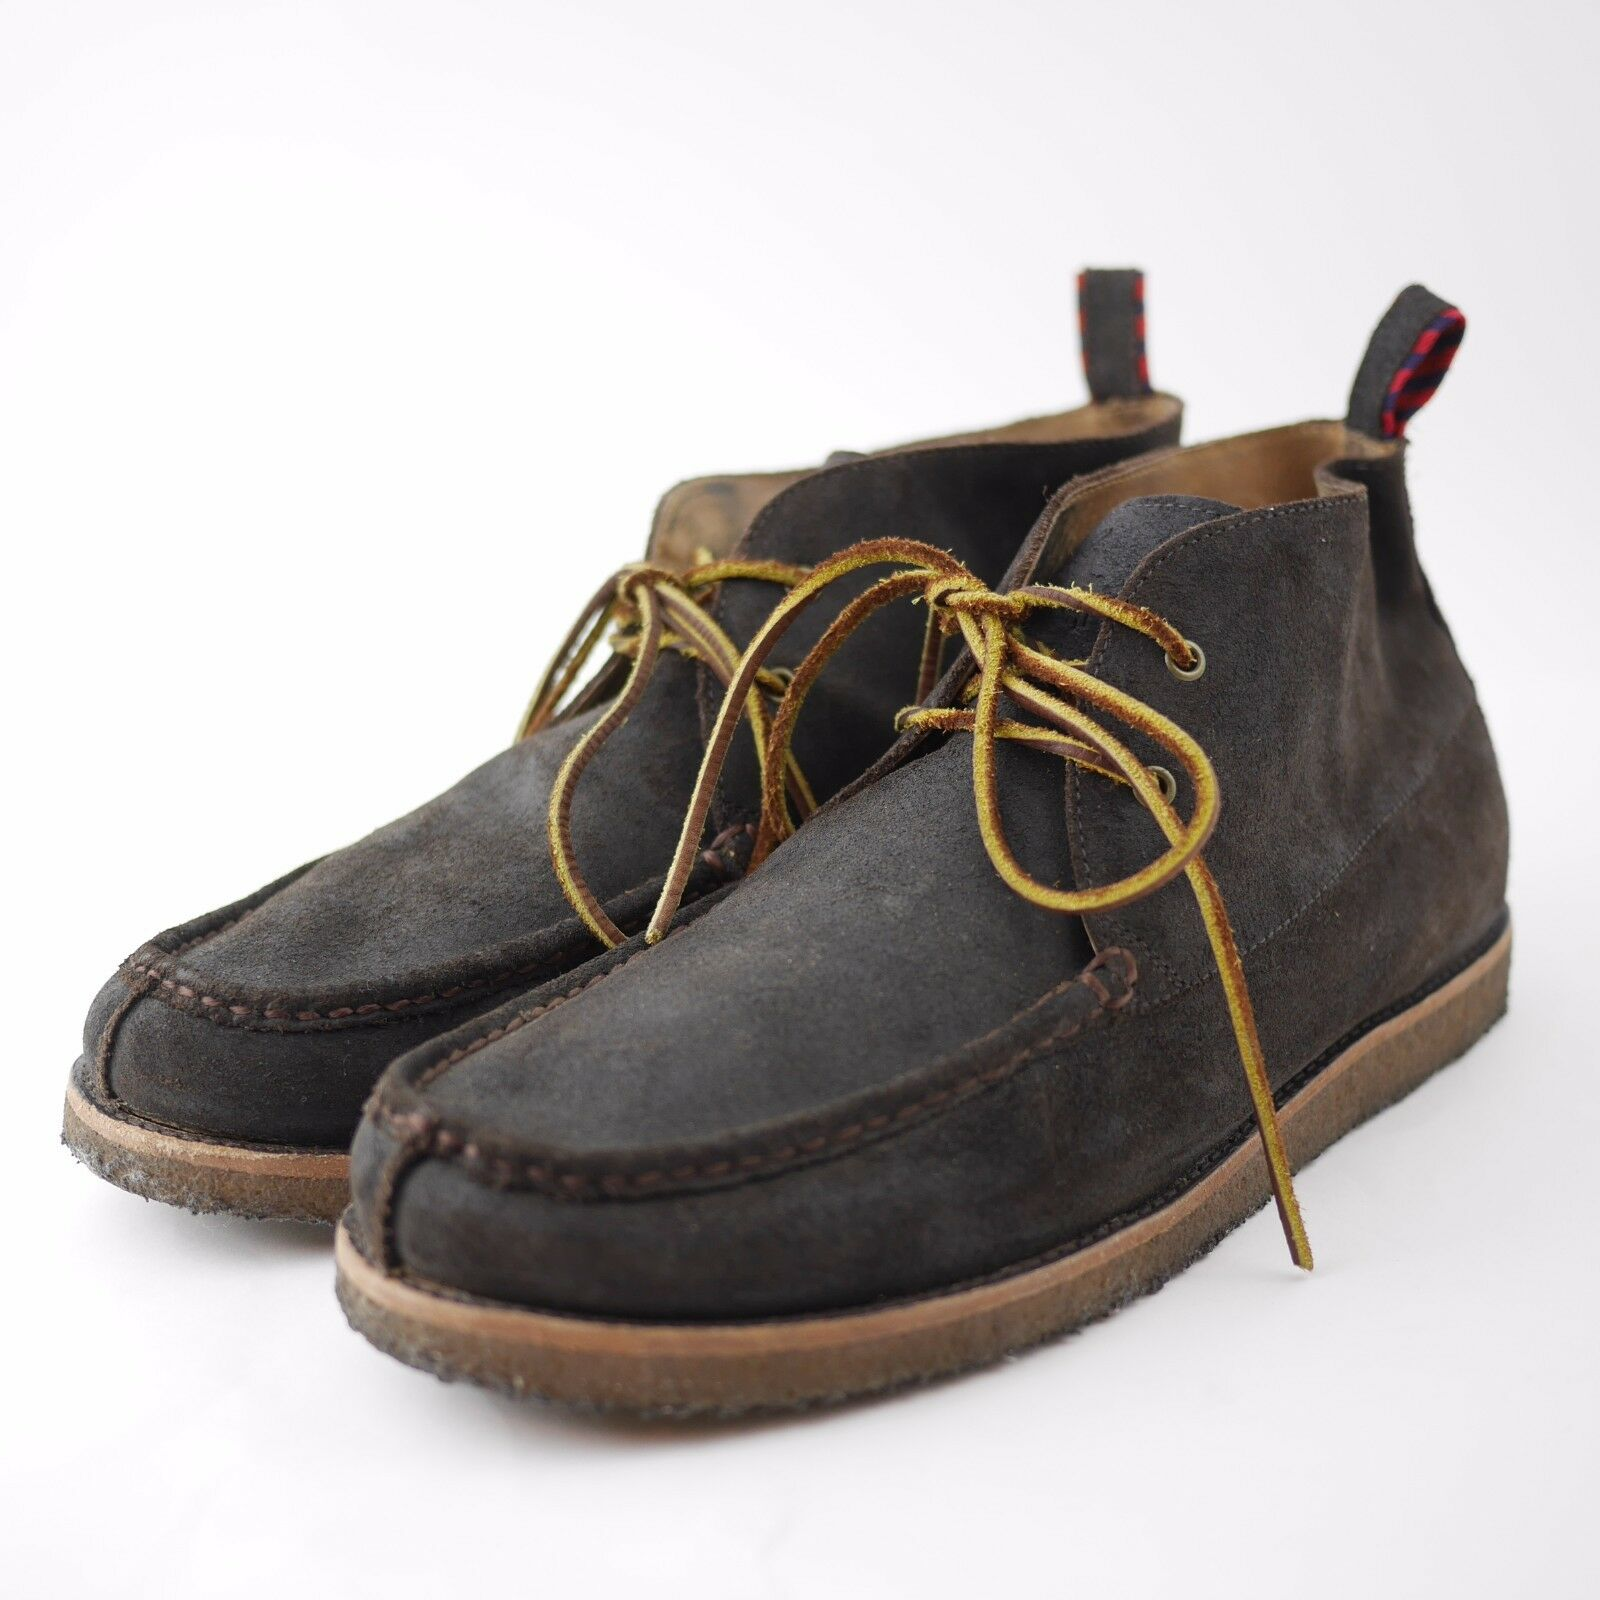 POLO RALPH LAUREN  Brown Suede Leather Ankle Pitney Chukka Boots - Men's 13 D